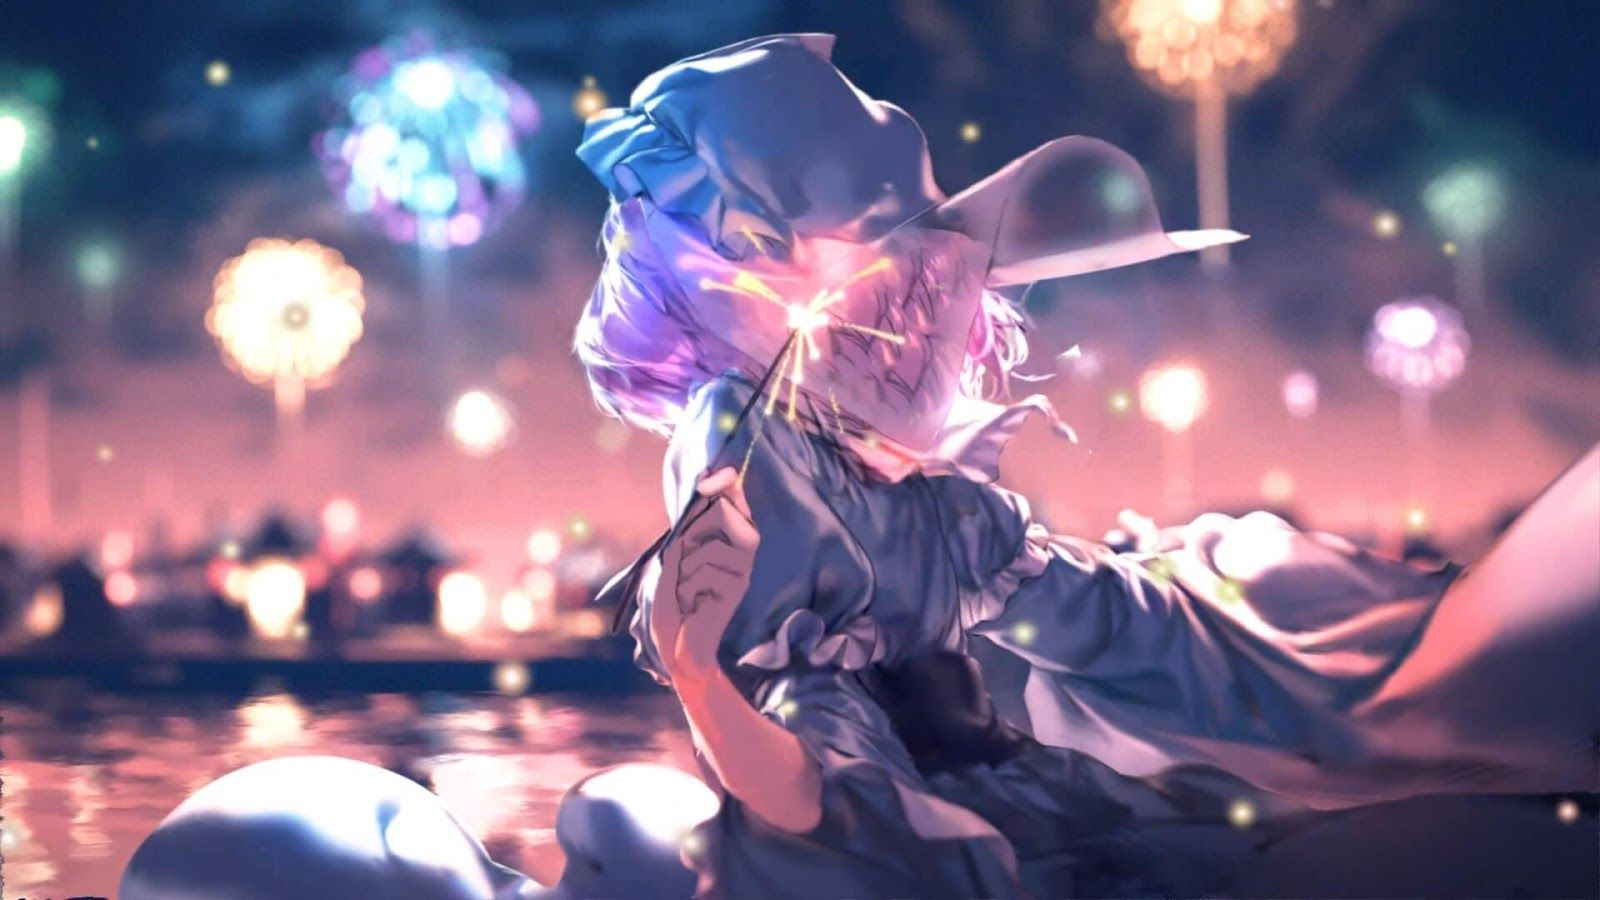 Touhou Project 1080p 60fps Wallpaper Engine Anime Anime Backgrounds Wallpapers Anime Wallpaper 1920x1080 Pink Wallpaper Anime